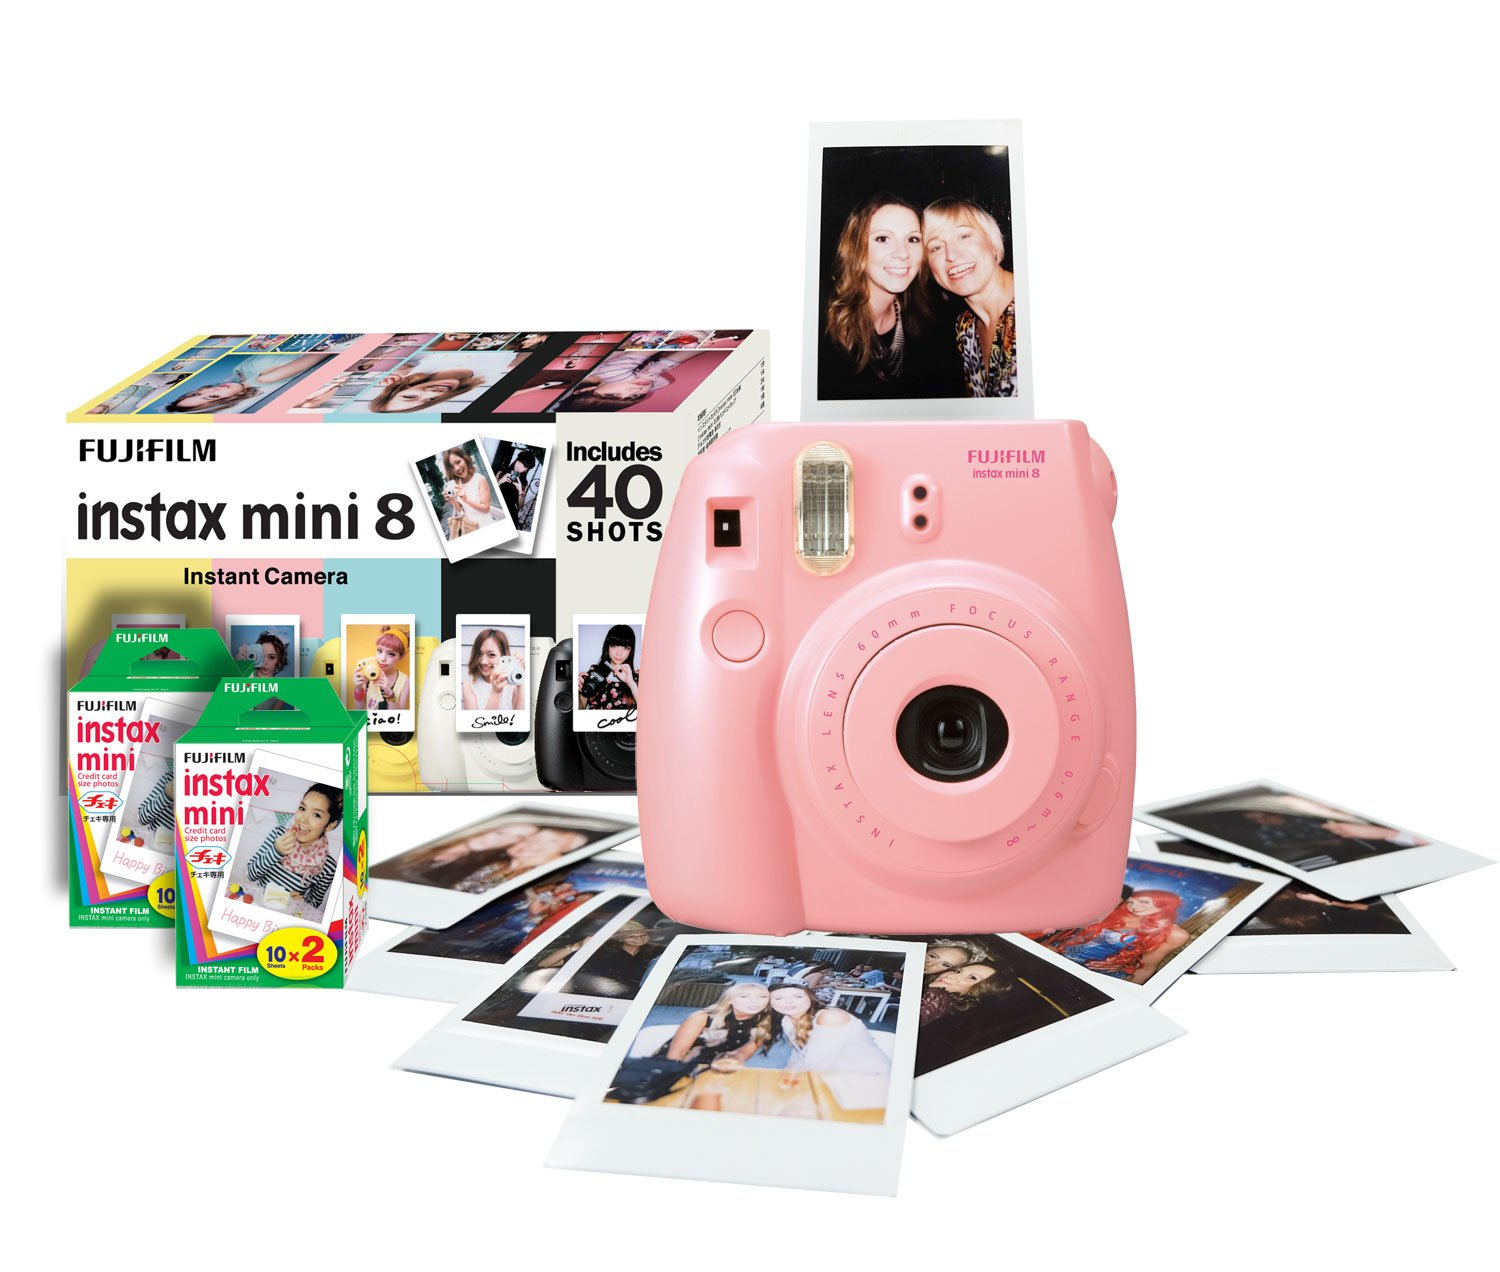 Instax Mini 8 Instant Camera Bundle with 40 Shots: Amazon.co.uk ...